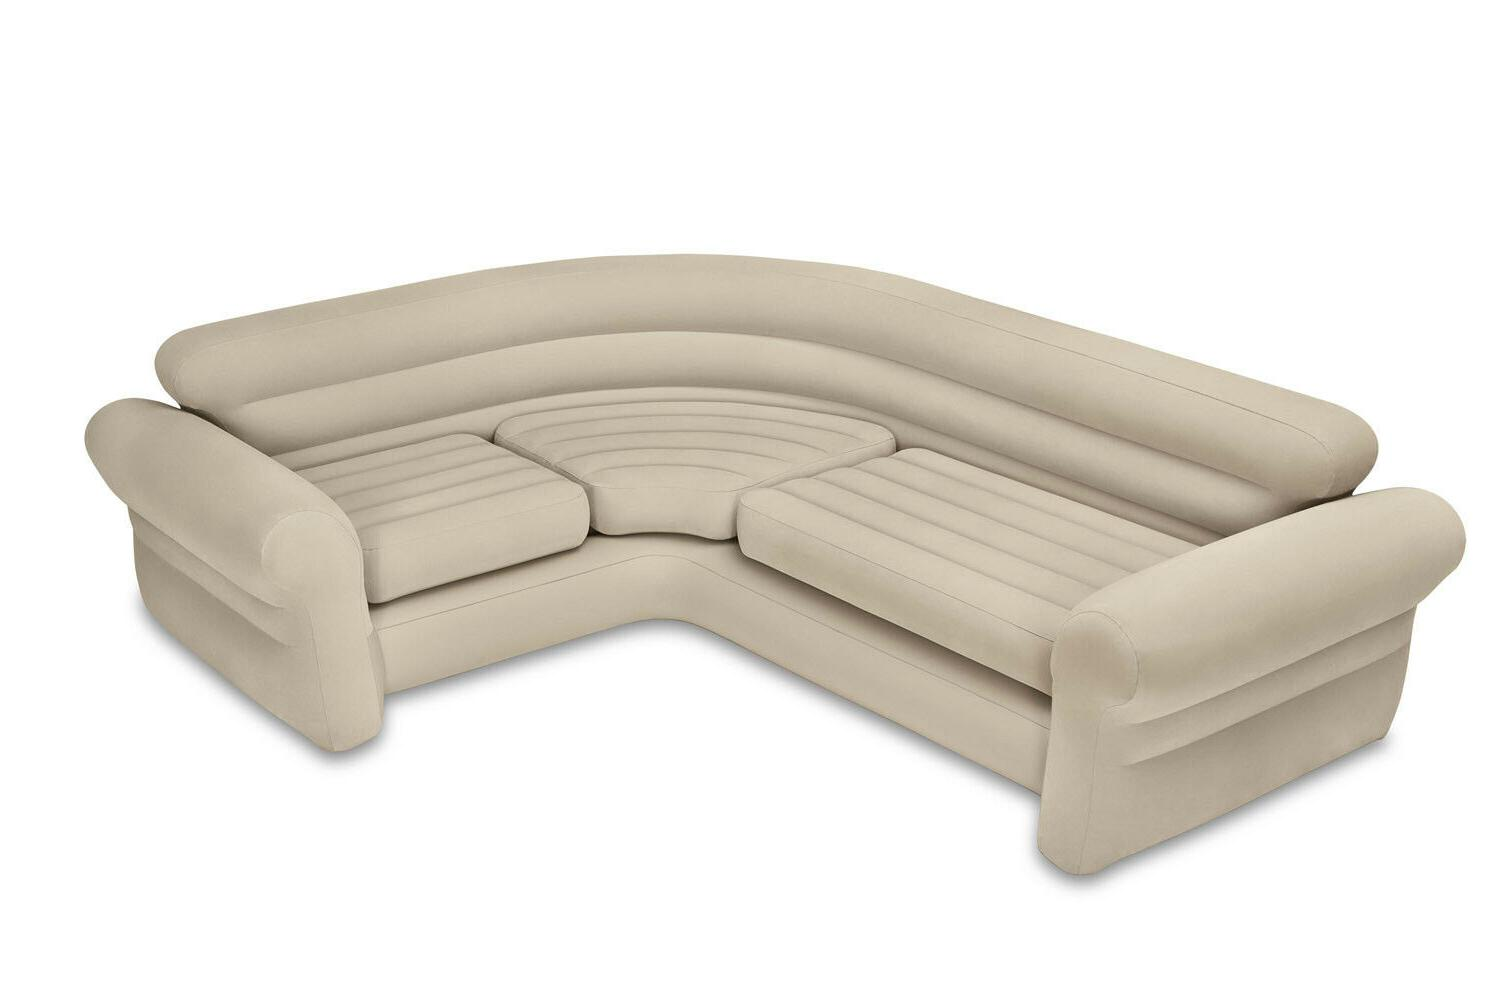 futon bed couch sofa sectional sleeper futon